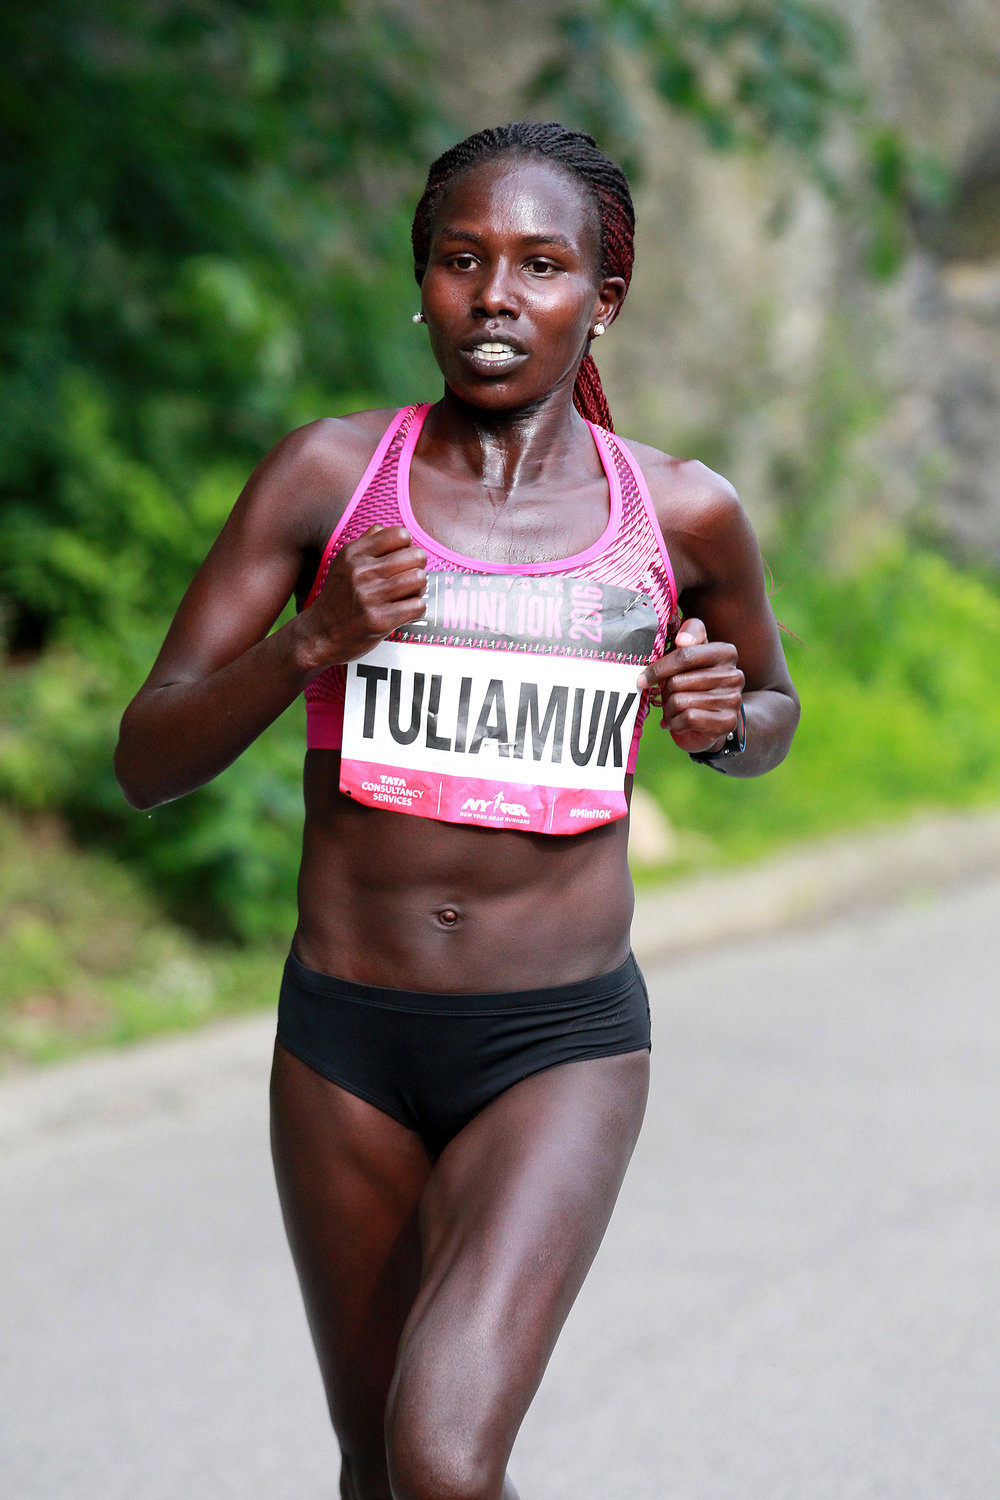 Aliphine Tuliamuk will run her first marathon as a U.S. citizen.